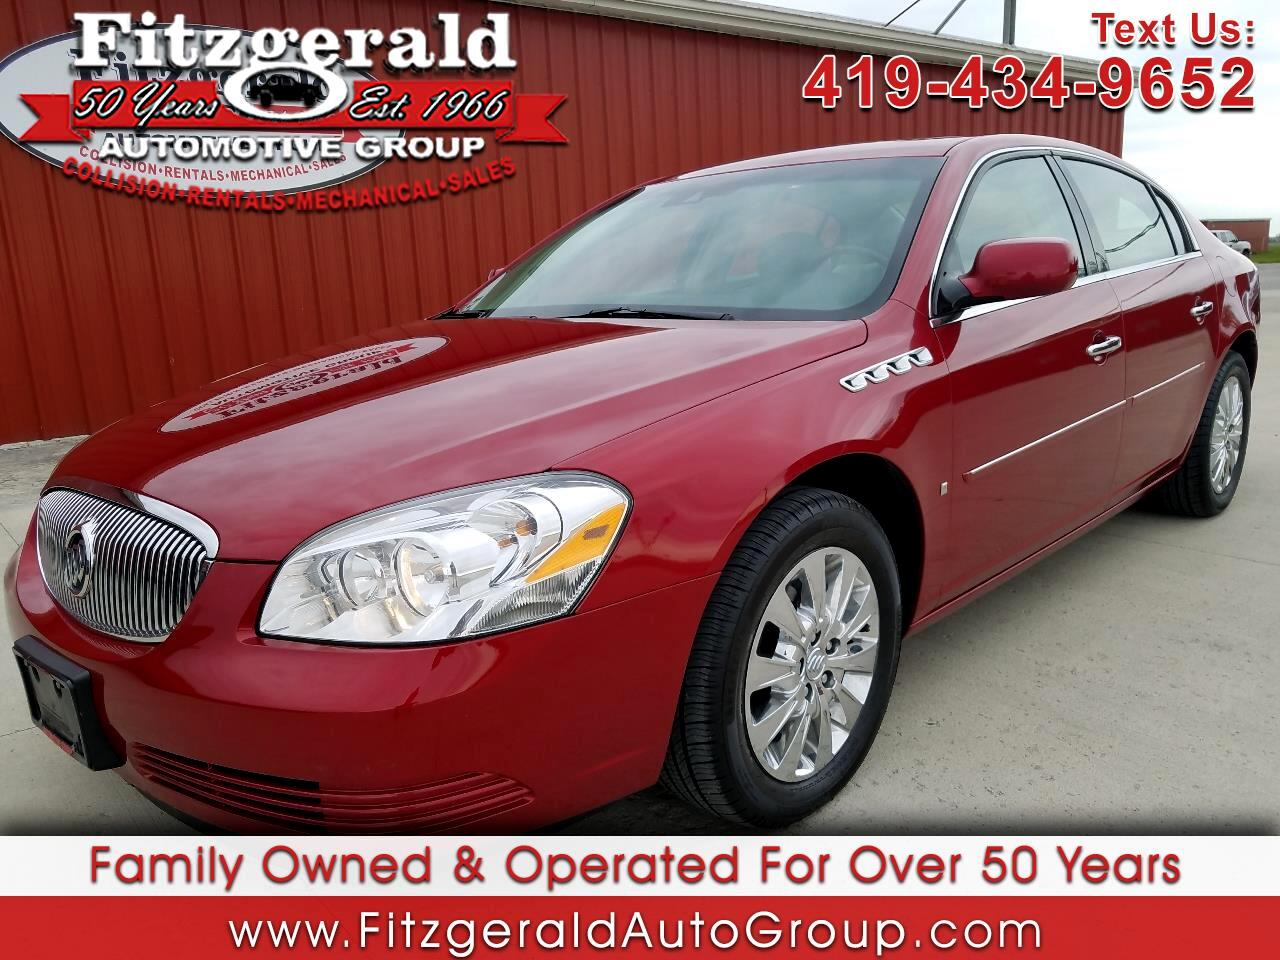 2008 Buick Lucerne 4dr Sdn V8 CXL Special Edition